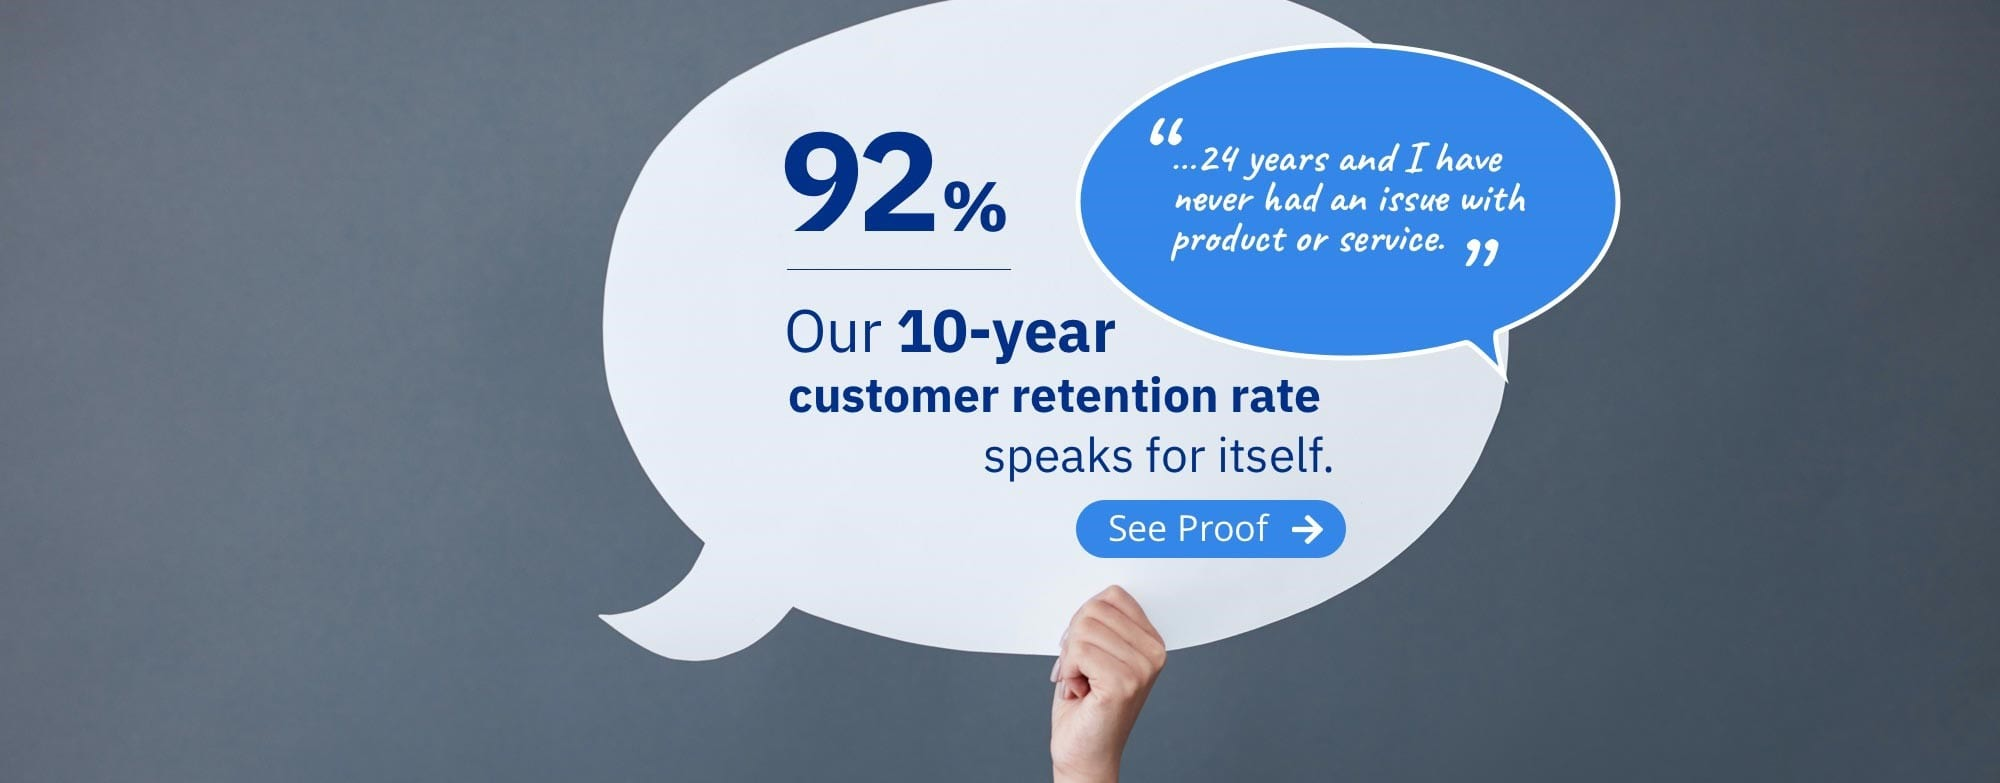 92% Customer Retention